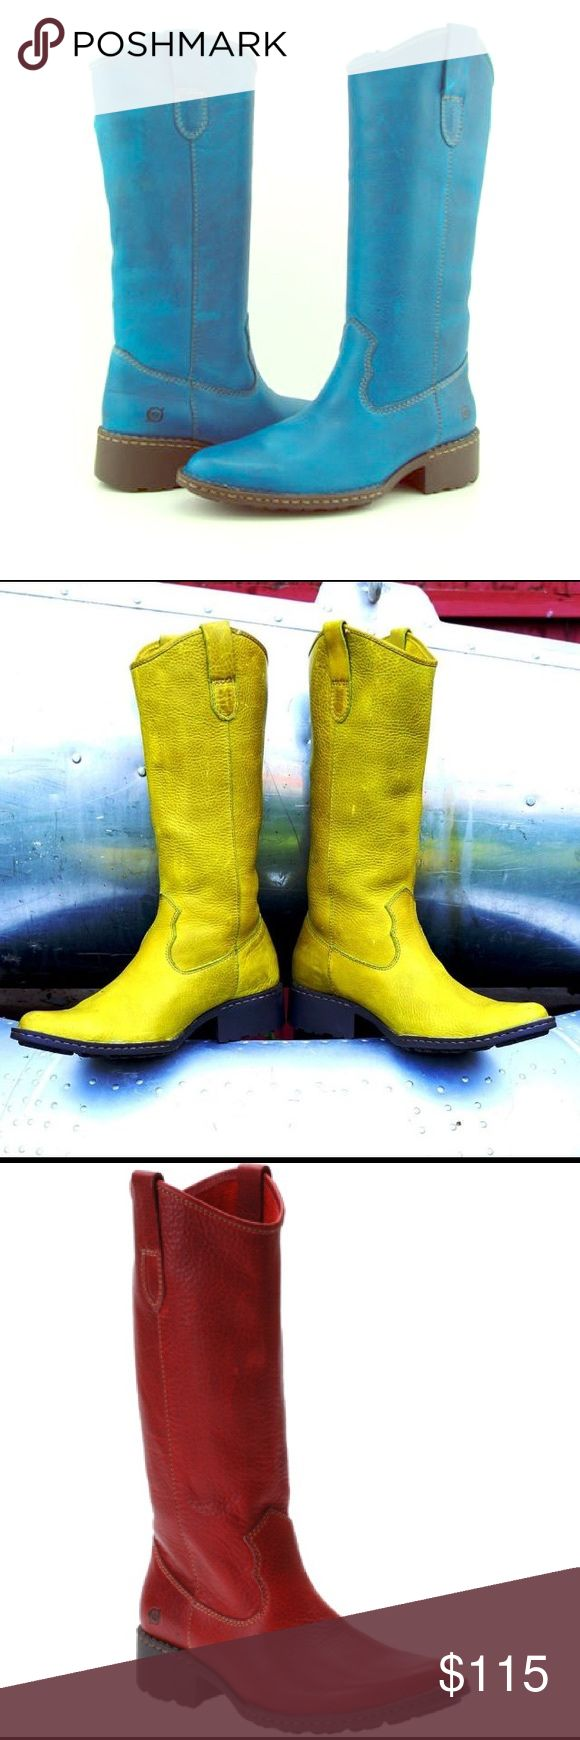 """ISO born shavano western cowboy boots size 7 ISO (NOT FOR SALE - IN SEARCH OF THESE) born """"shavano"""" cowboy wester boots size 7. Would love them in blue/teal/turquoise, but would also buy the yellow/chartreuse or red ones. Please comment if you have some or know where I could find a pair!! Born Shoes"""